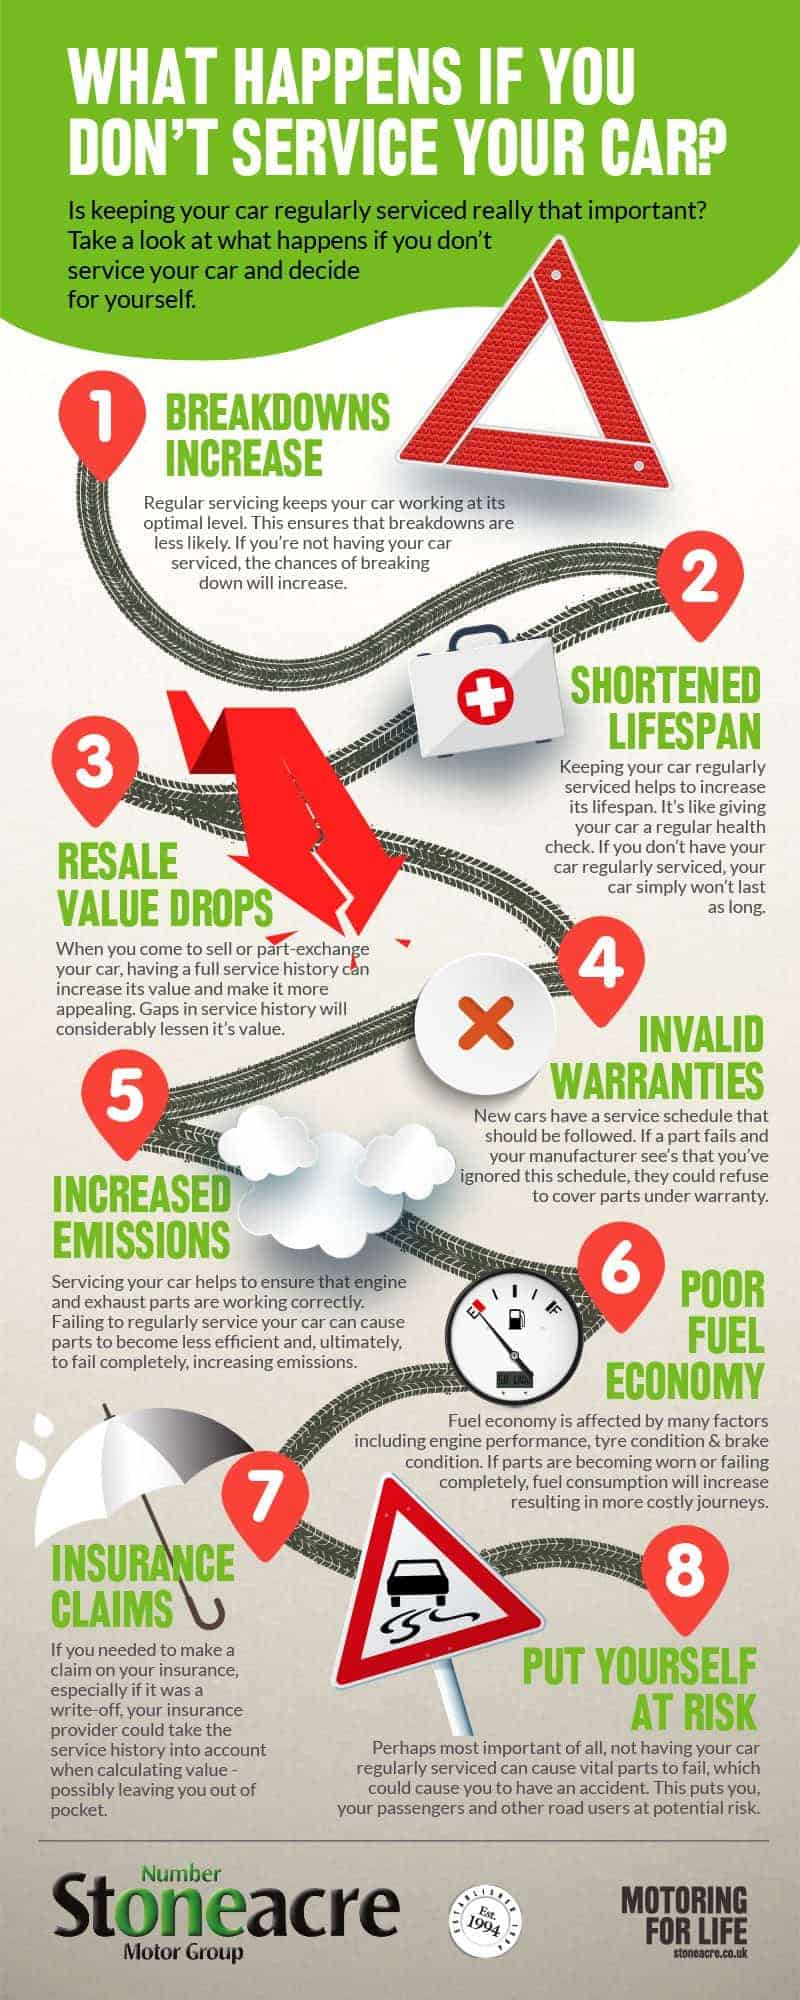 what-happens-if-you-dont-service-your-car-infographic